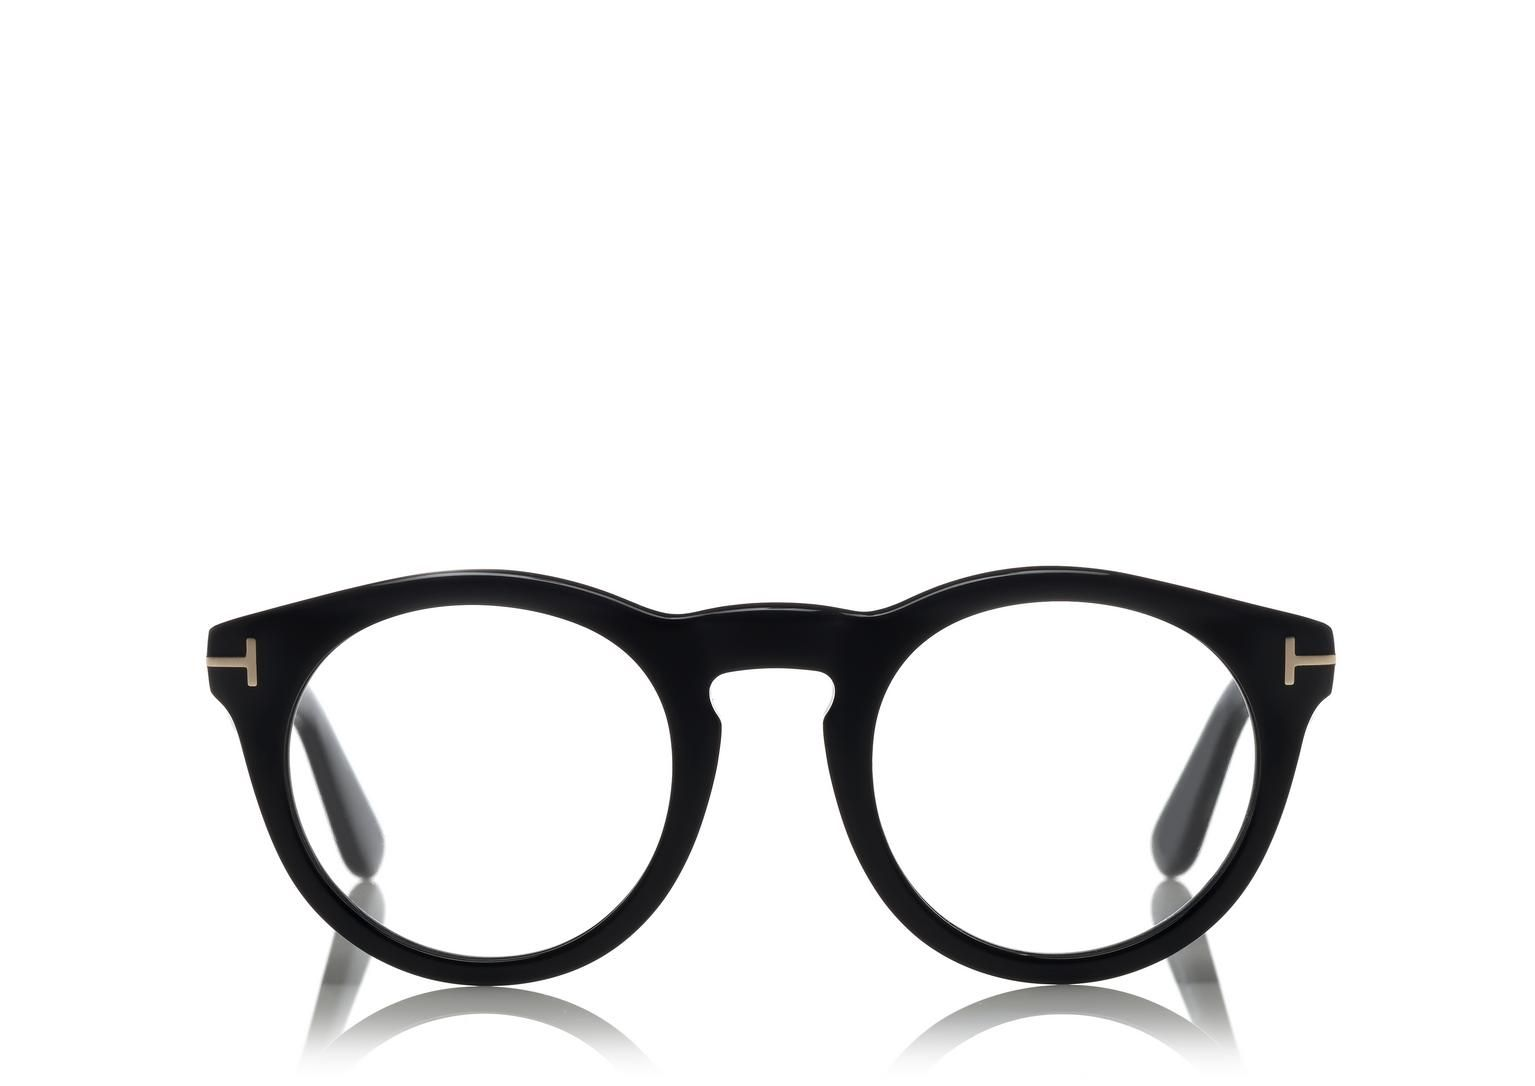 SOFT ROUNDED OPTICAL FRAME | Shop Tom Ford Online Store | TONE ...